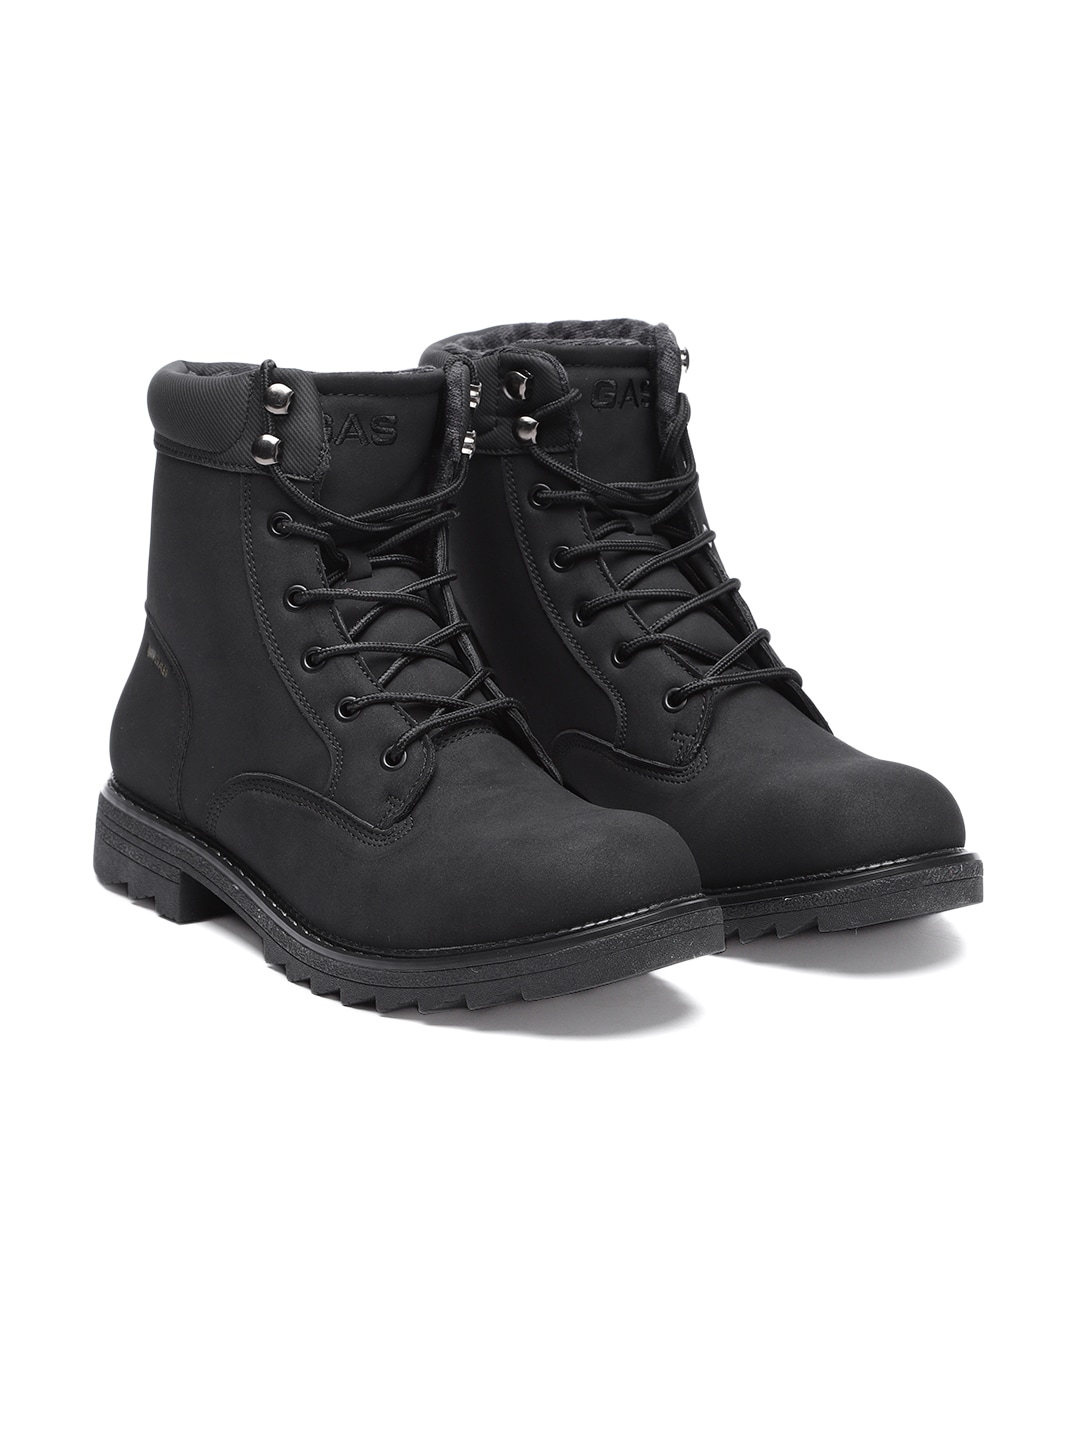 303c23963d2 Boots - Buy Boots for Women